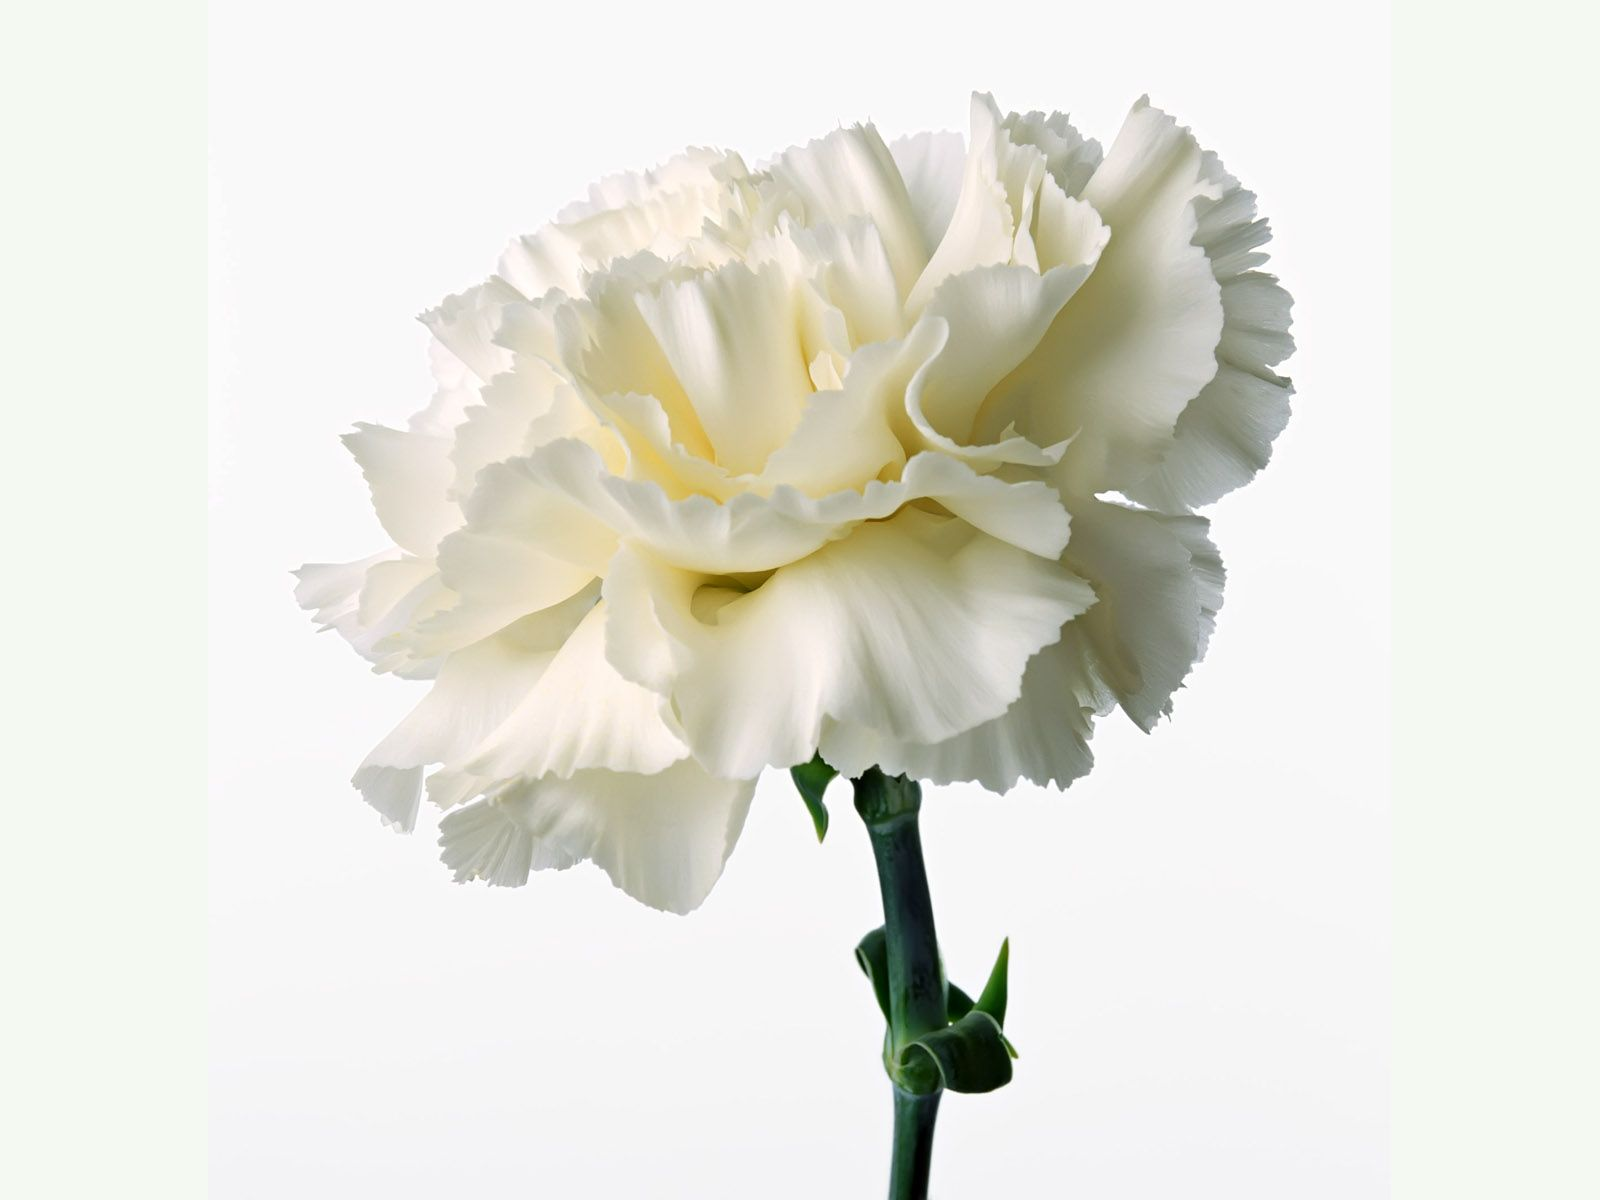 Carnation White and Cream Flowers Carnations Flowers Carnation